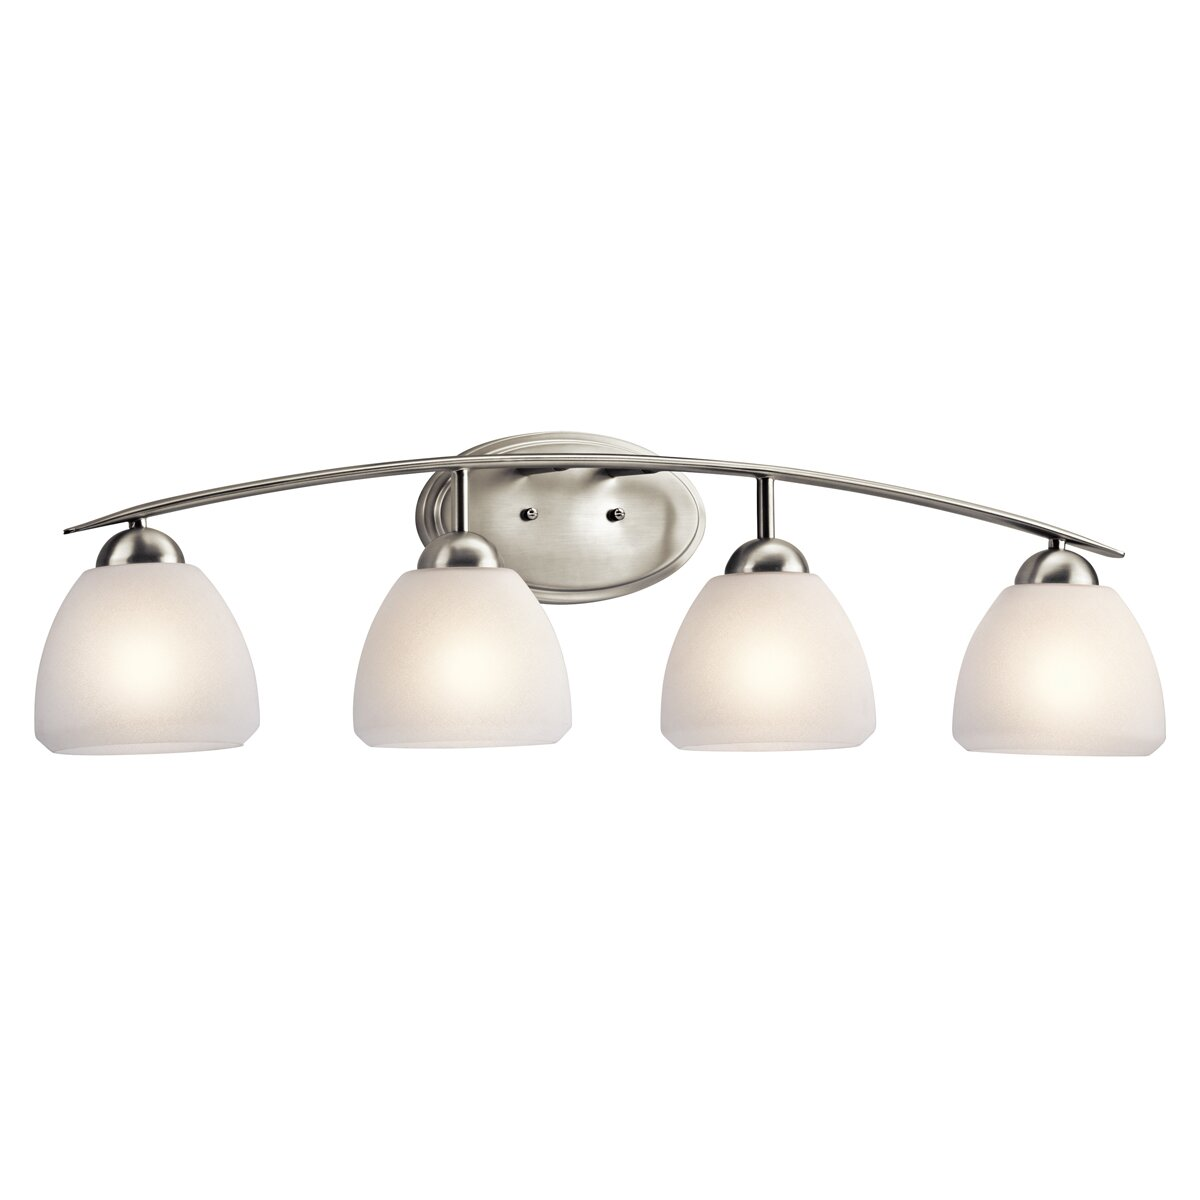 Kichler Caleigh 4 Light Vanity Light Reviews Wayfair